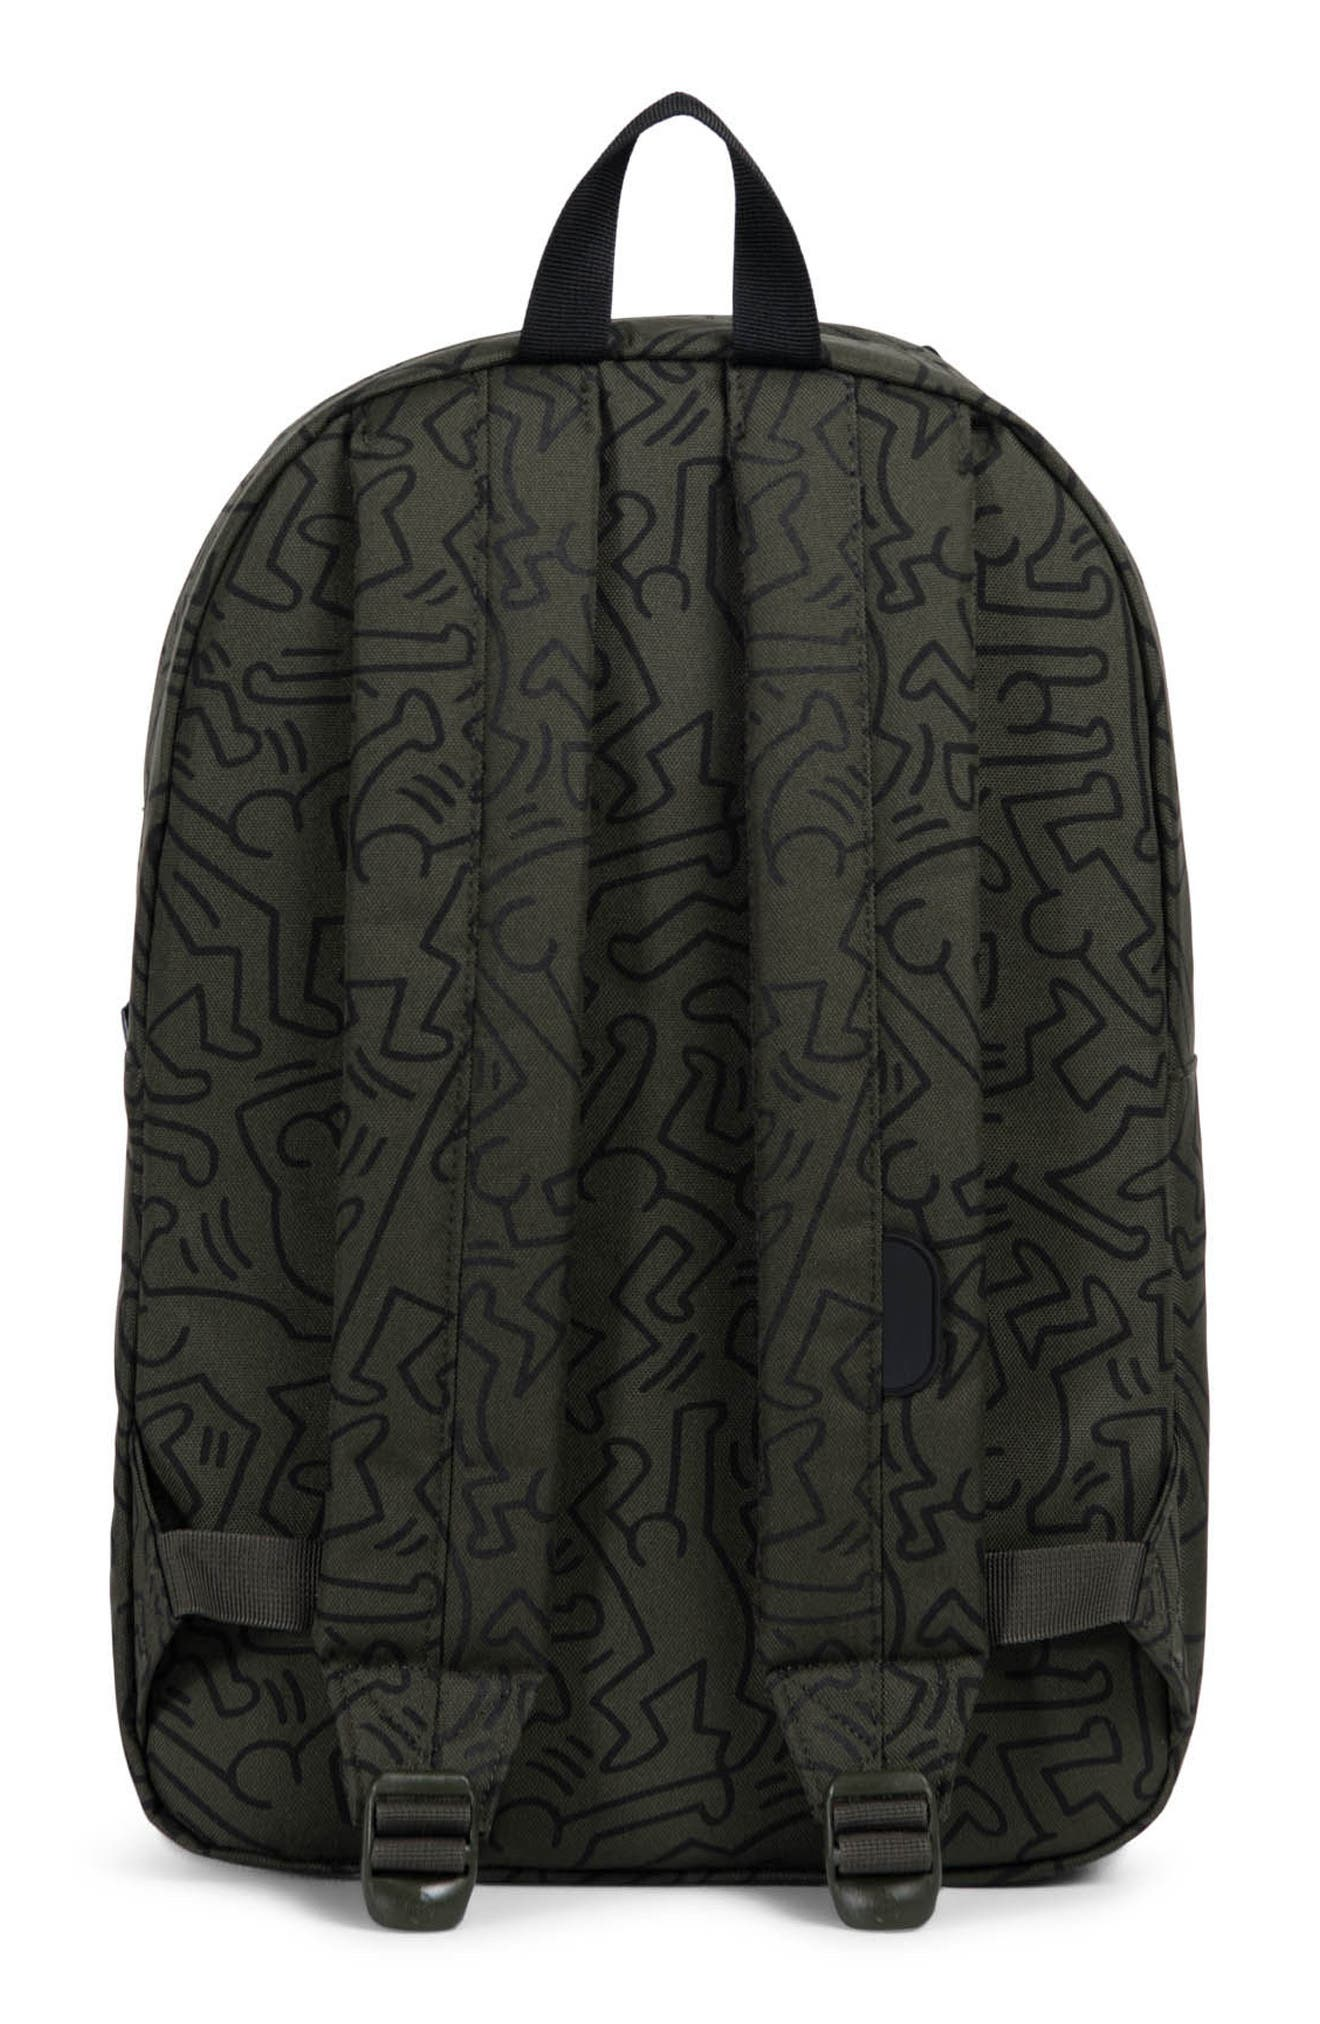 Winlaw x Keith Haring Backpack,                             Alternate thumbnail 7, color,